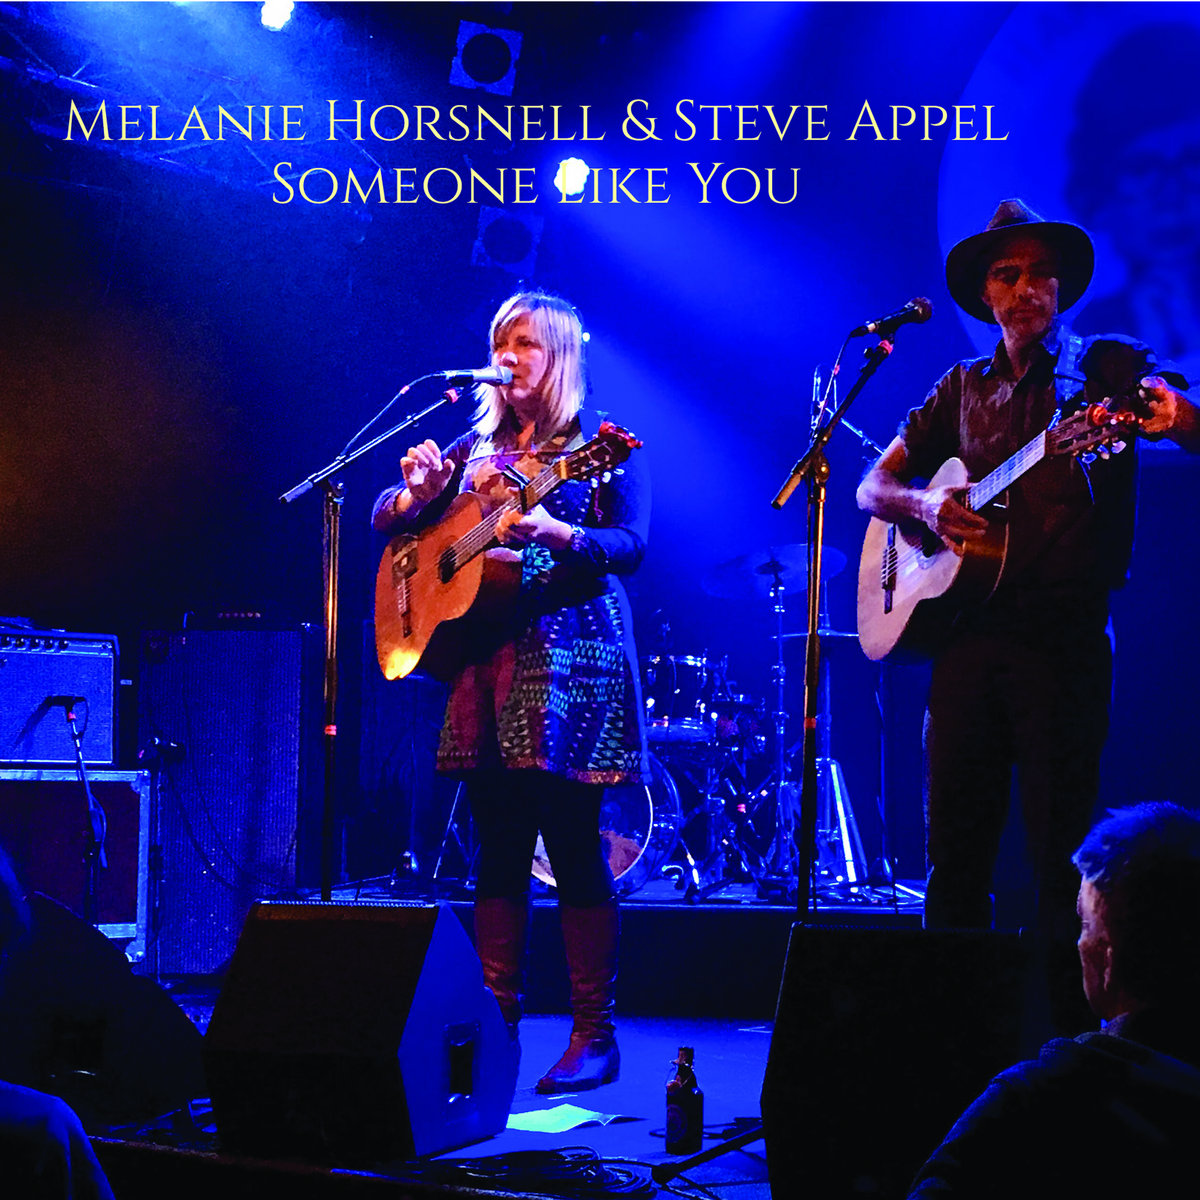 Someone Like You by Melanie Horsnell & Steve Appel